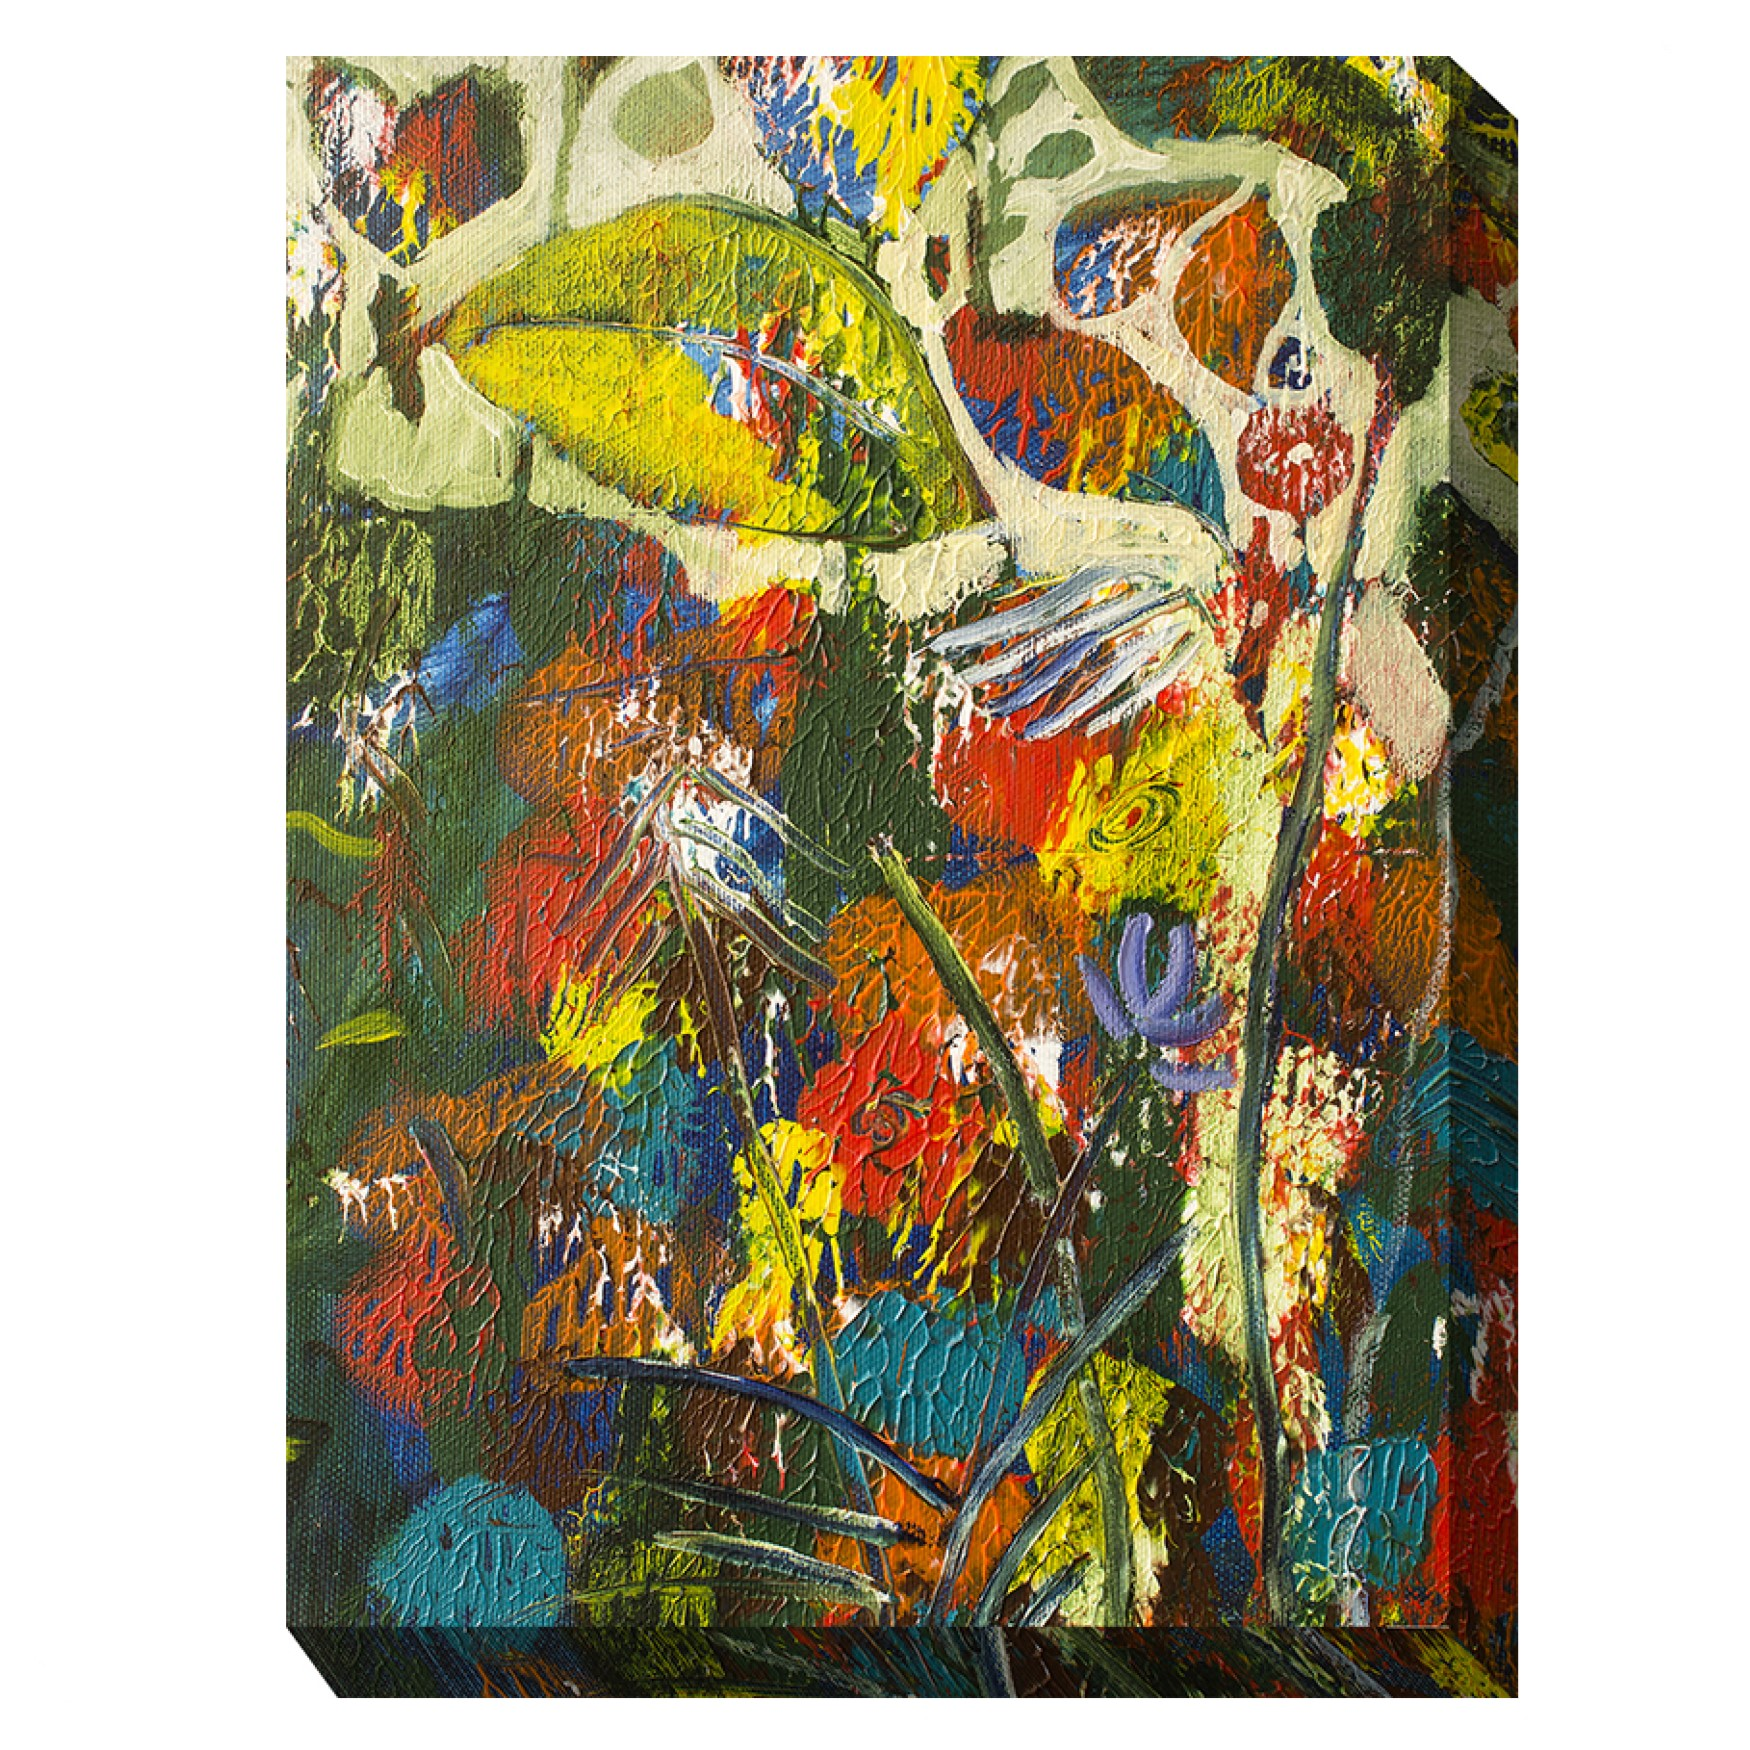 BAWDY BOTANICALS OUTDOOR ART 30X40, MULTI